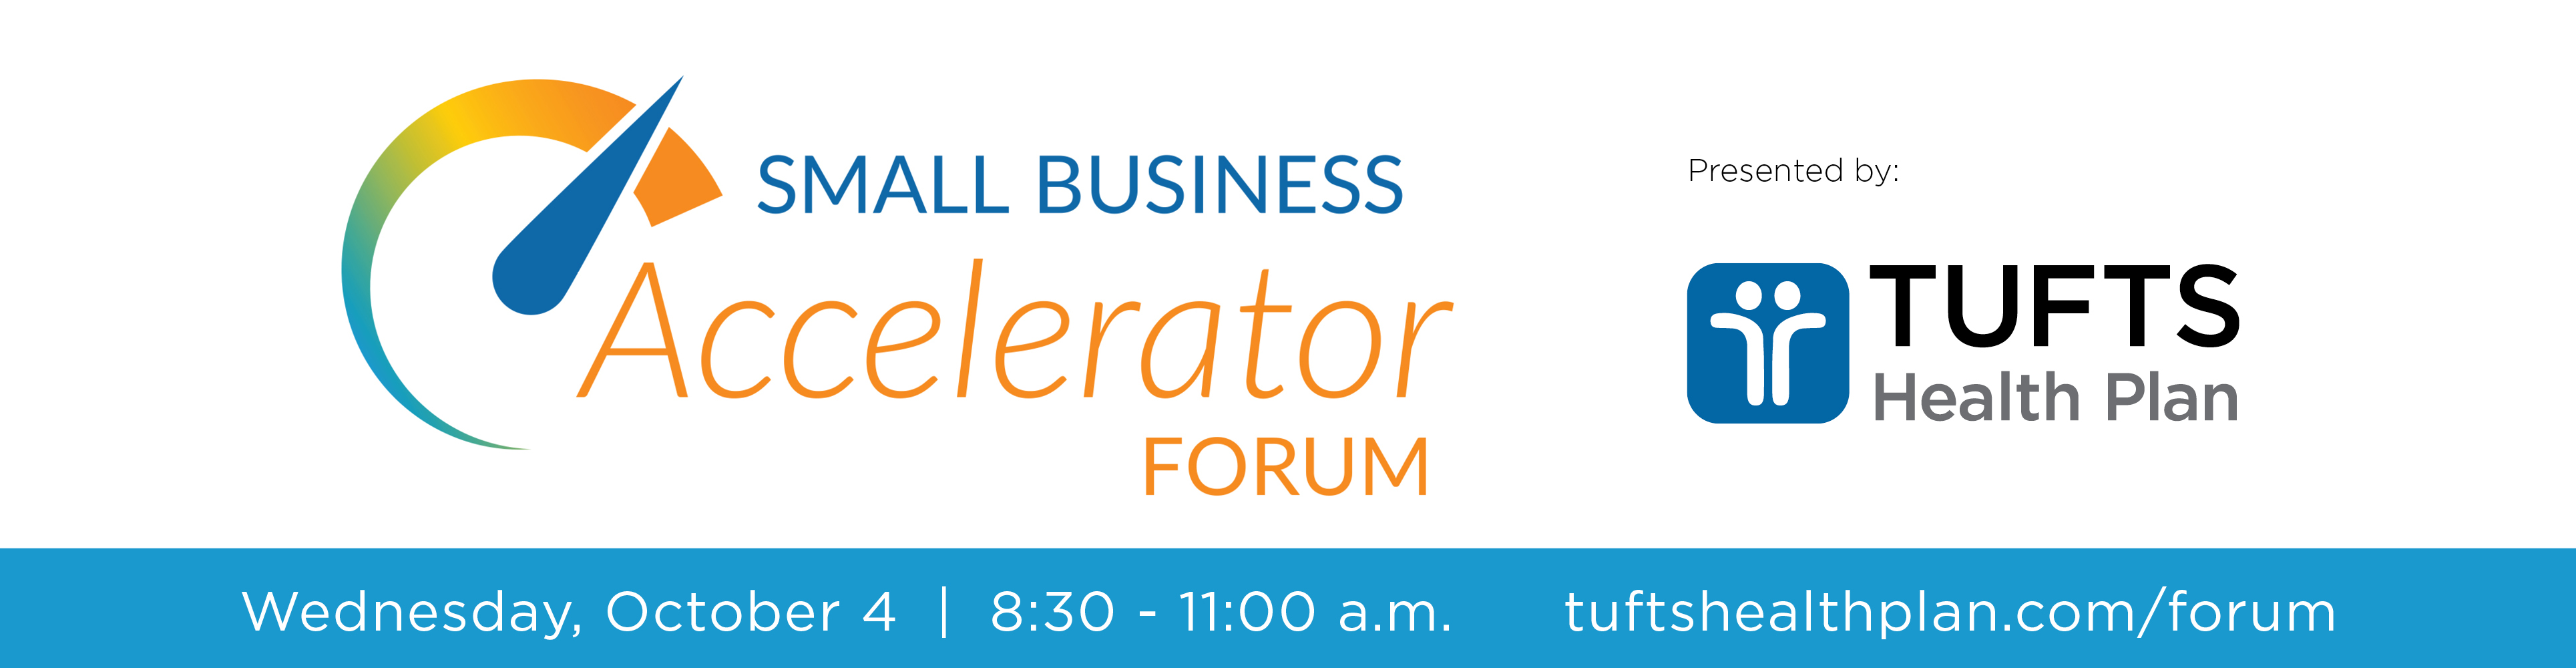 Providence Small Business Accelerator Forum